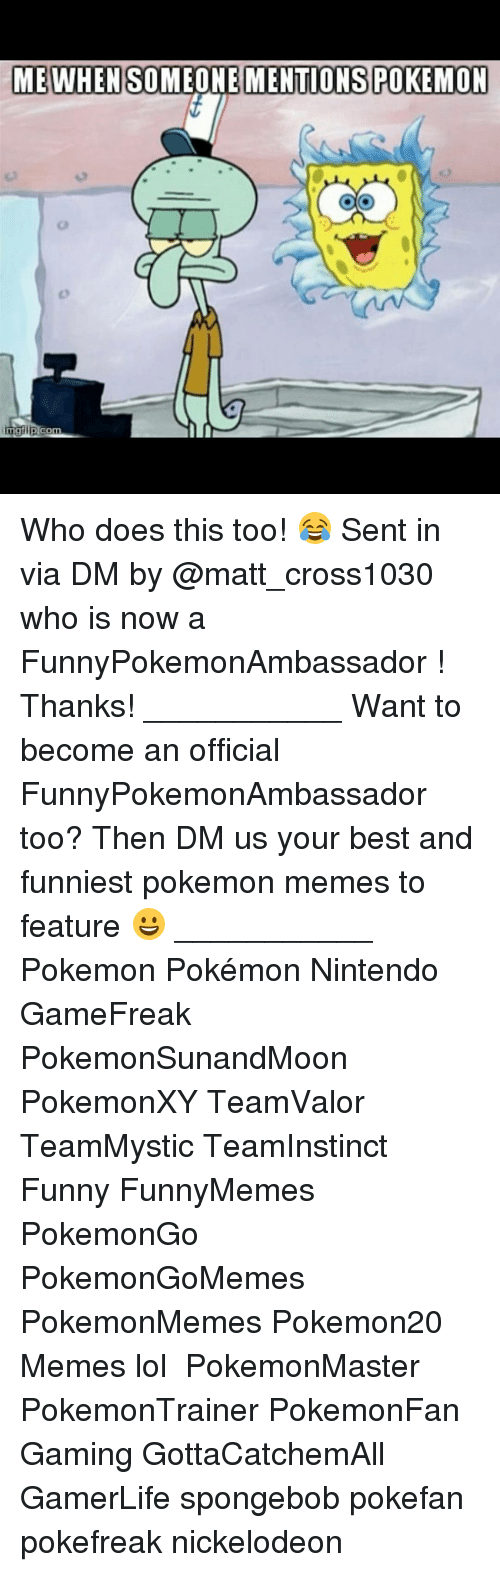 Memes, Nickelodeon, and SpongeBob: ME WHEN SO  MENTIONS POKEMON  mgilip  Com Who does this too! 😂 Sent in via DM by @matt_cross1030 who is now a FunnyPokemonAmbassador ! Thanks! ___________ Want to become an official FunnyPokemonAmbassador too? Then DM us your best and funniest pokemon memes to feature 😀 ___________ Pokemon Pokémon Nintendo GameFreak PokemonSunandMoon PokemonXY TeamValor TeamMystic TeamInstinct Funny FunnyMemes PokemonGo PokemonGoMemes PokemonMemes Pokemon20 Memes lol ポケットモンスター PokemonMaster PokemonTrainer PokemonFan Gaming GottaCatchemAll GamerLife spongebob pokefan pokefreak nickelodeon